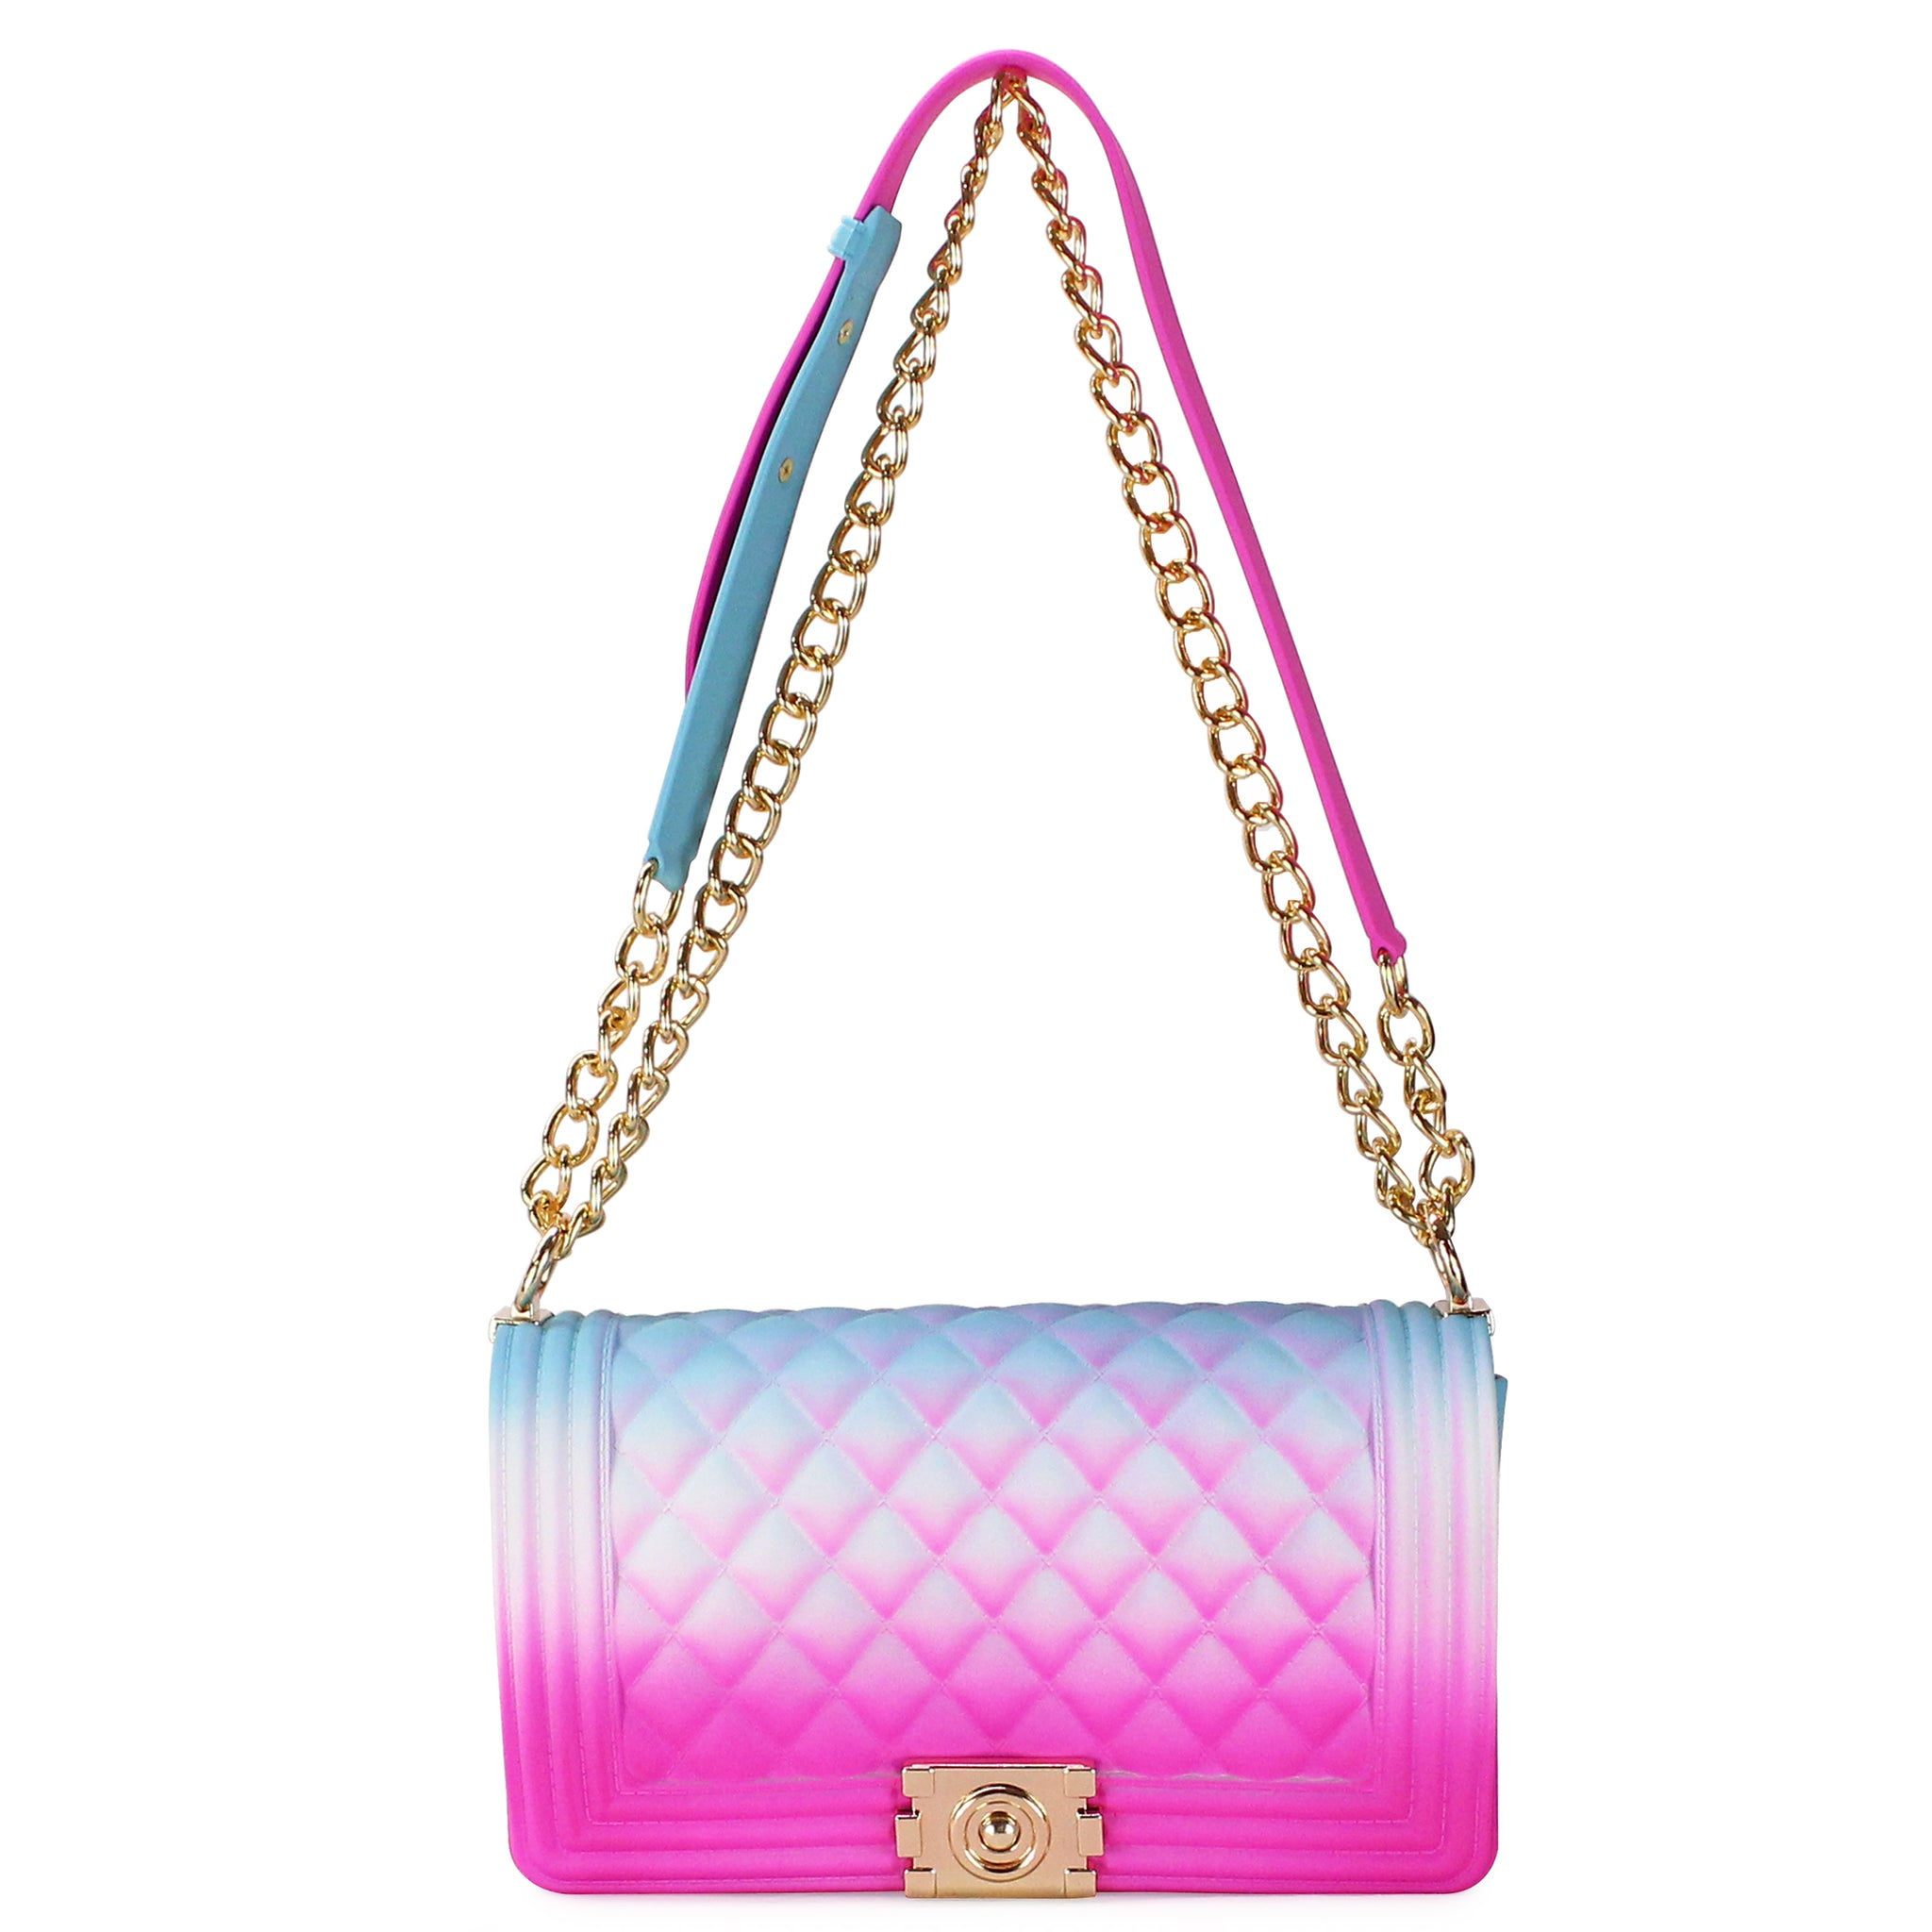 QUILTED RAINBOW SILICONE SHOULDER BAG - Jenuine Handbags